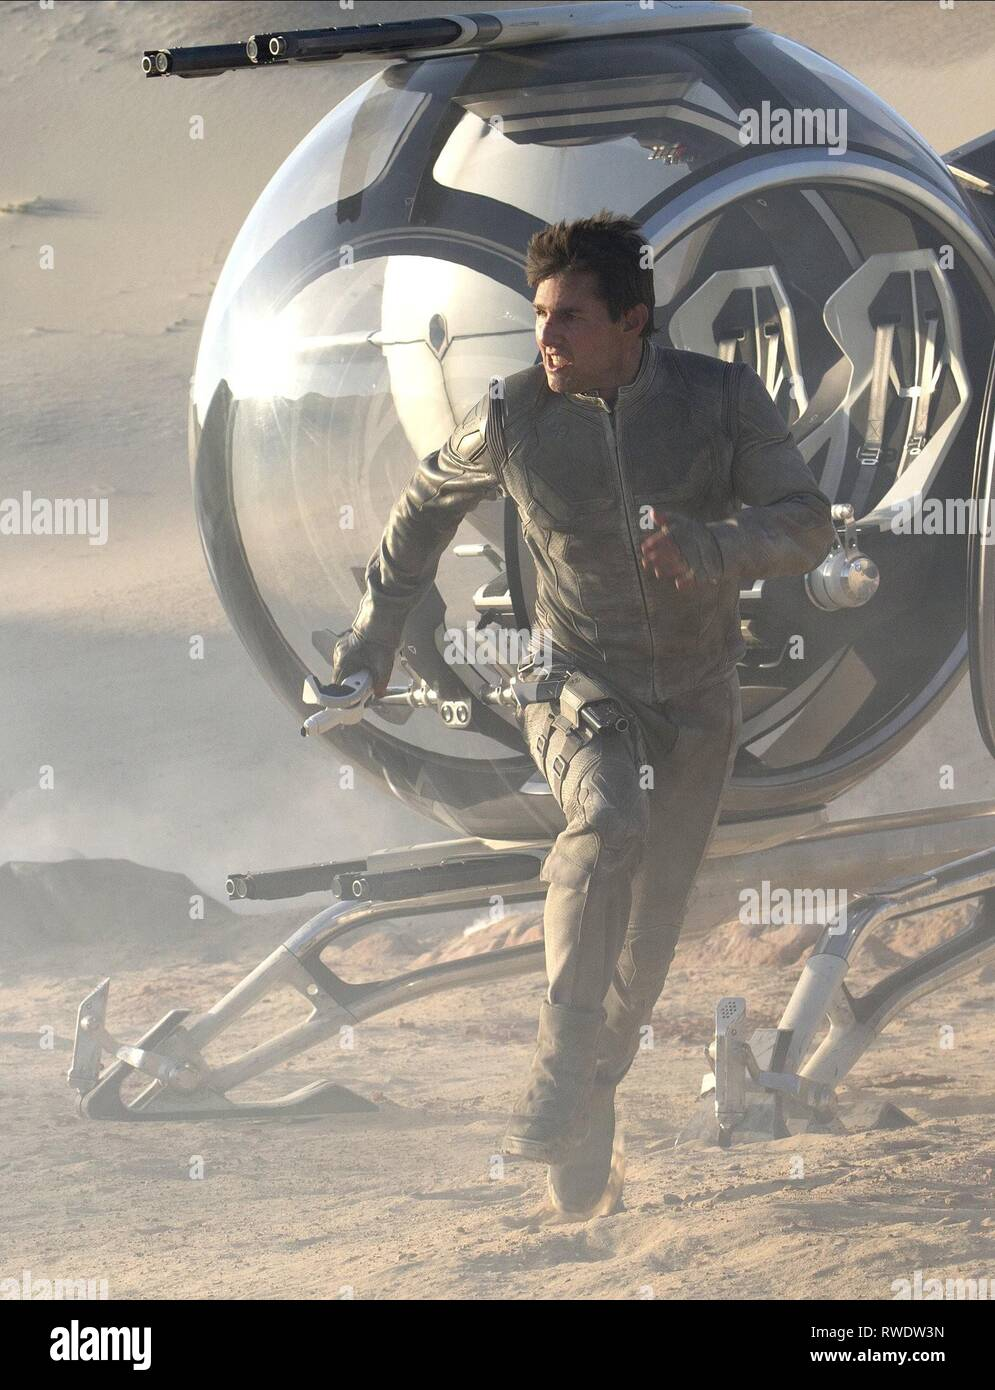 TOM CRUISE, OBLIVION, 2013 - Stock Image